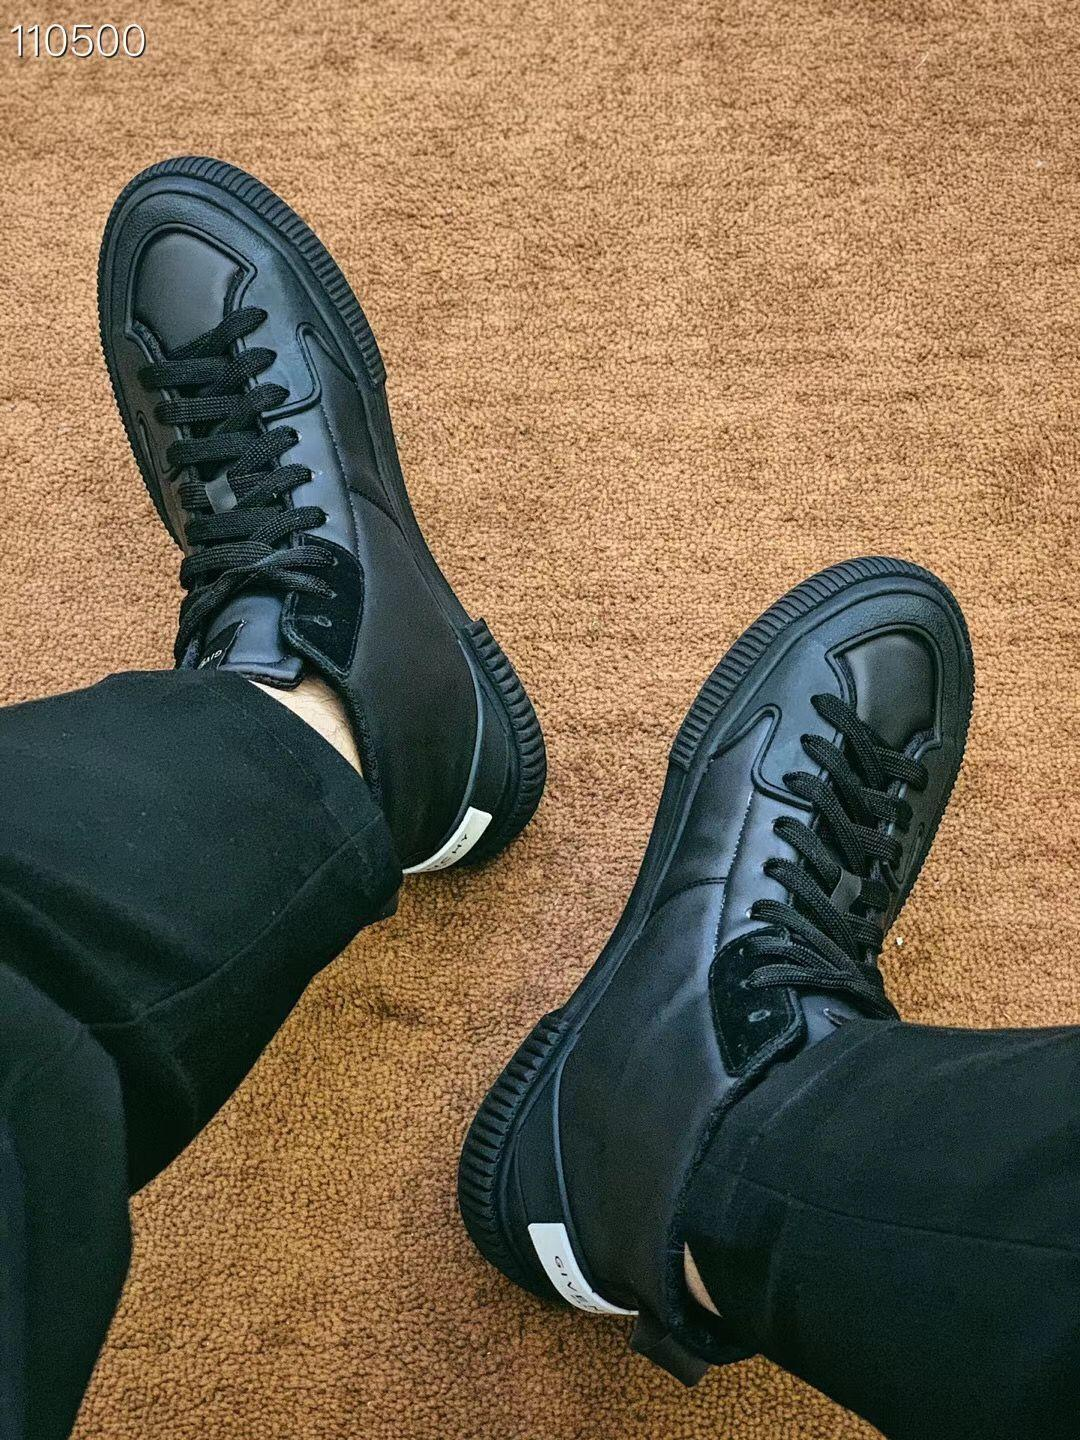 2020 luxurys -n-ch Give Hommes Chaussures montantes Casual Mode Hommes Mocassins à bout rond piste lacent Hommes Chaussures Blanc Noir Chaussures d'origine